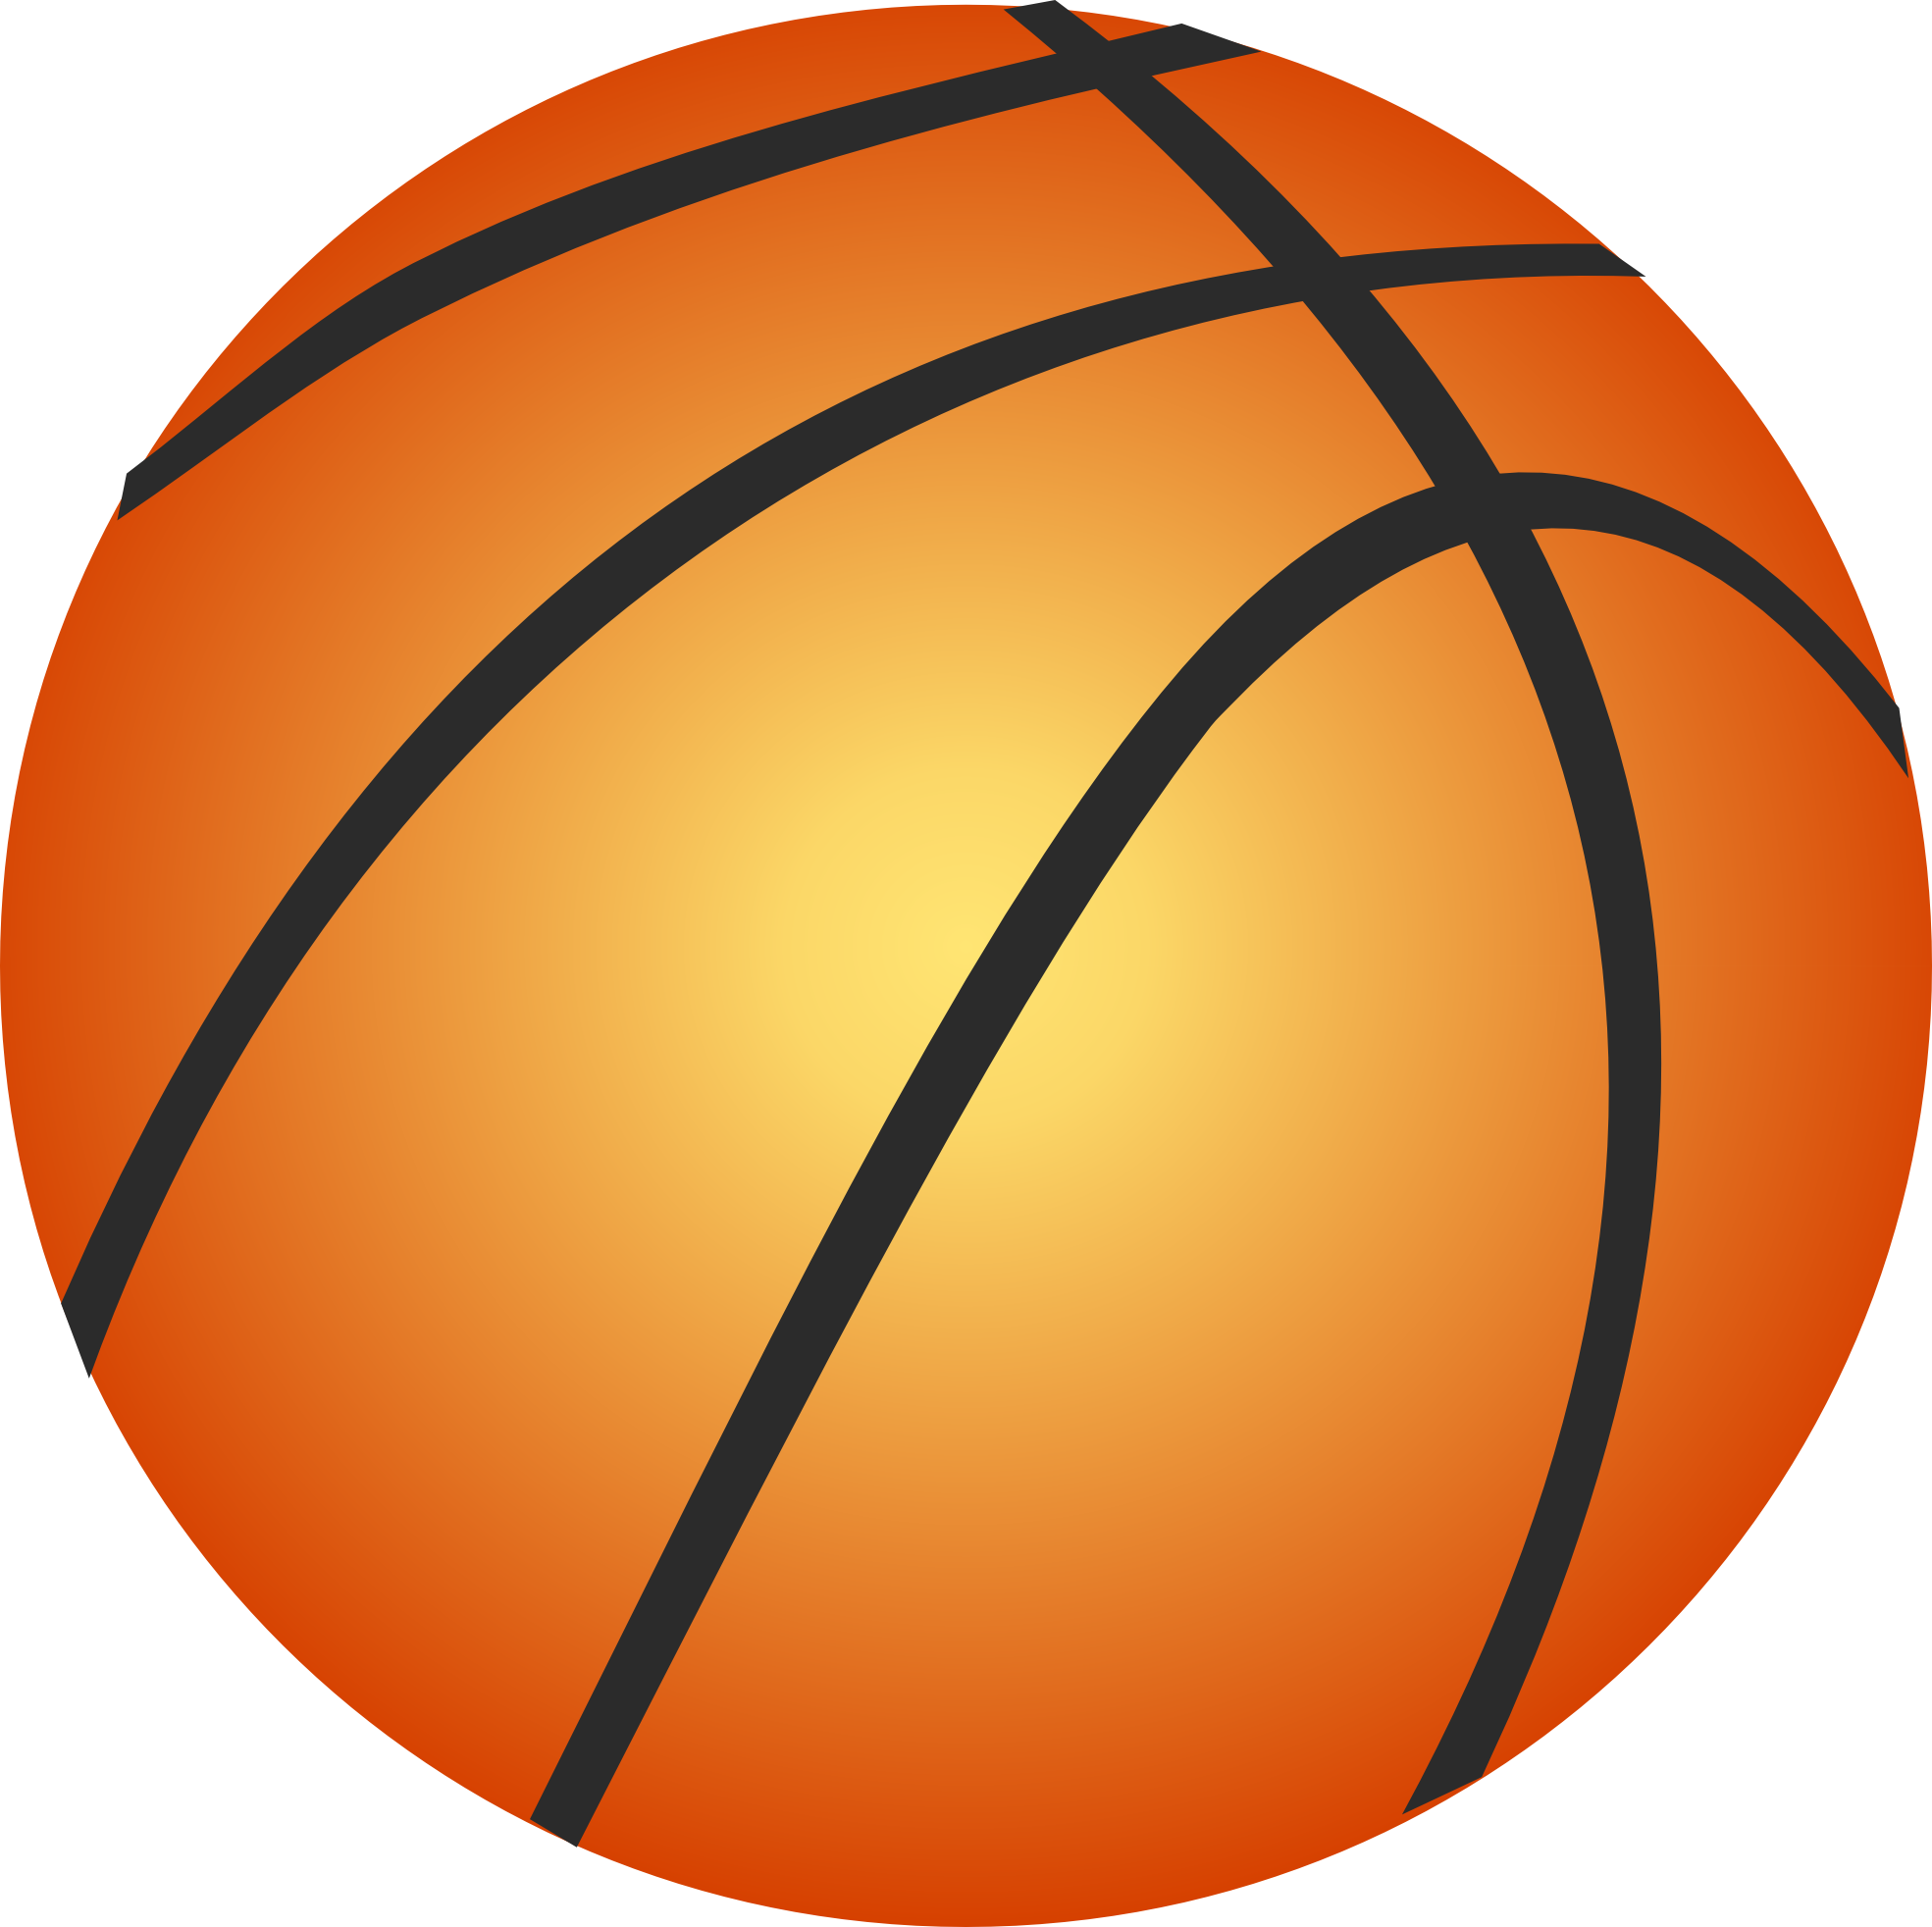 1969x1964 Basketball Clipart Free Clipart Images 2